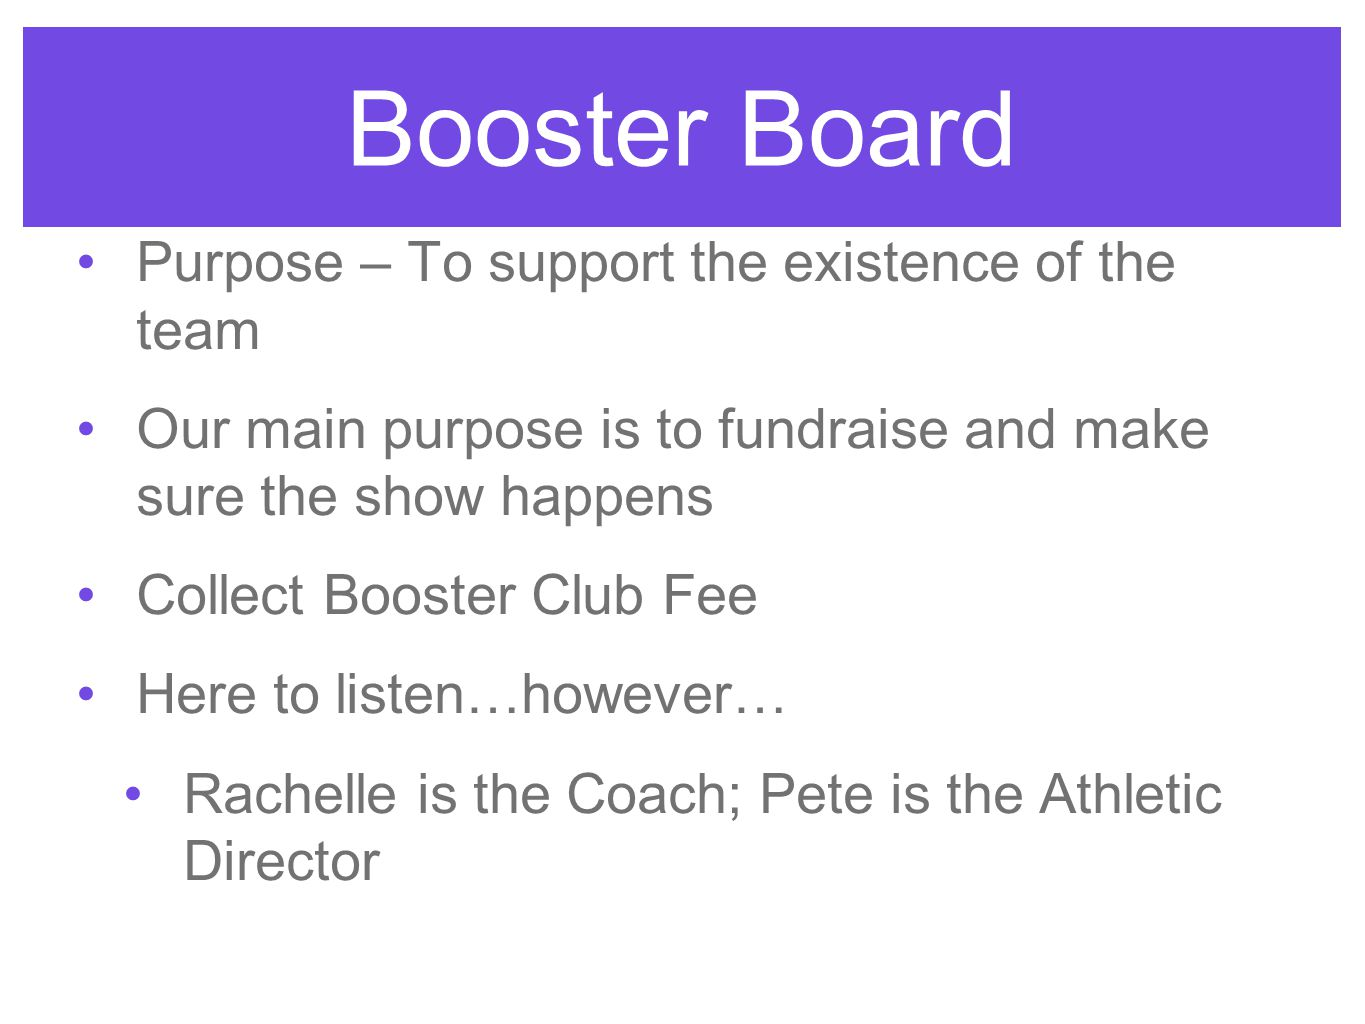 Booster Board Purpose – To support the existence of the team Our main purpose is to fundraise and make sure the show happens Collect Booster Club Fee Here to listen…however… Rachelle is the Coach; Pete is the Athletic Director